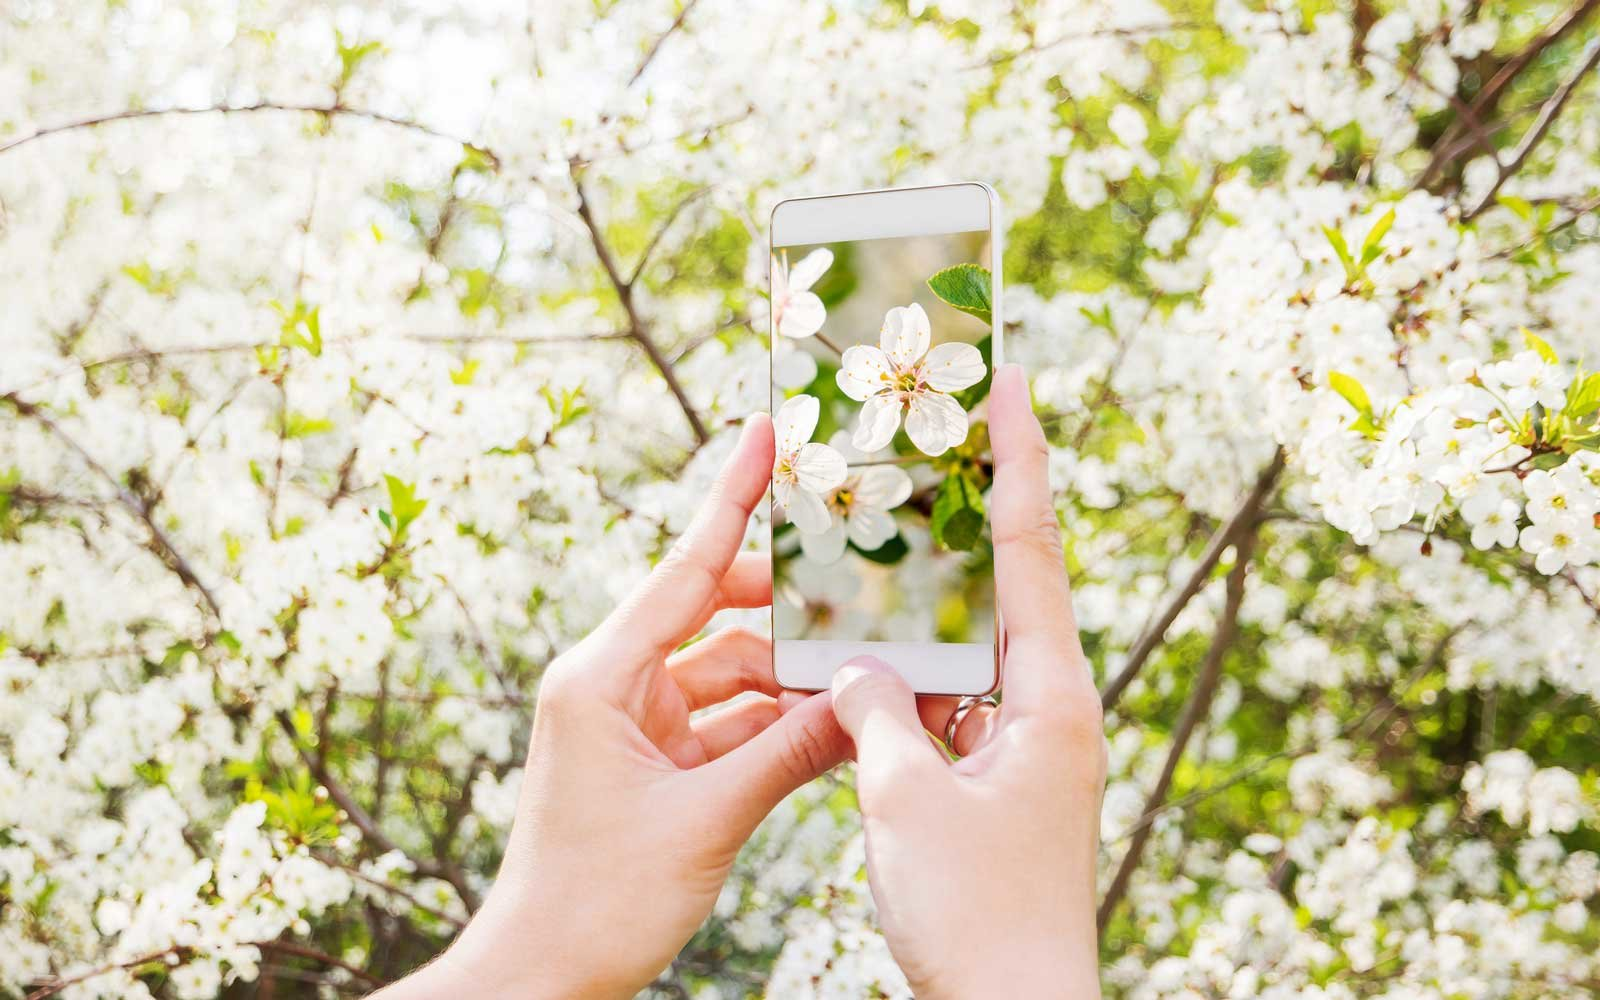 This New App Will Help You Identify the Plants and Animals You See in Nature